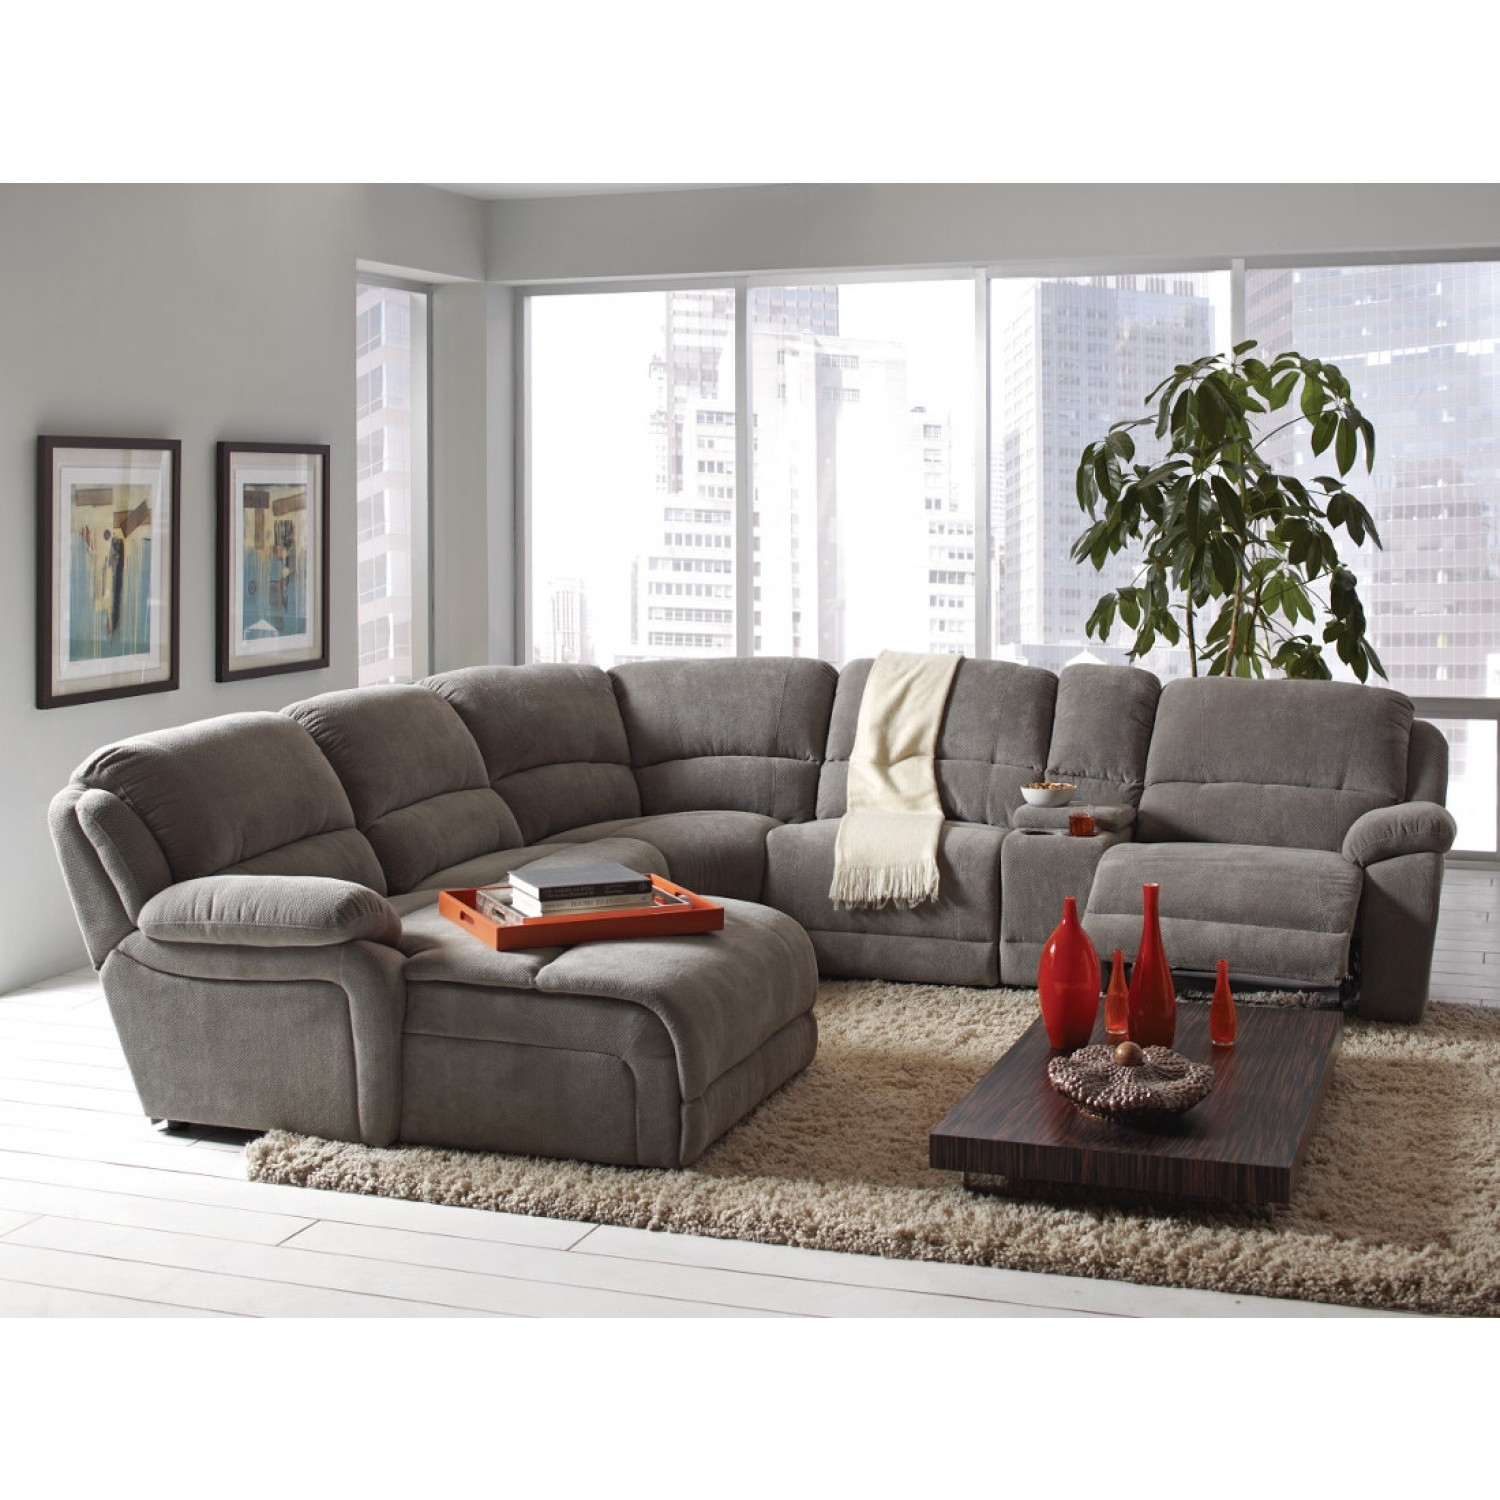 Coaster Mackenzie Silver 6 Piece Reclining Sectional Sofa With Inside Sectional Sofas That Come In Pieces (View 5 of 10)